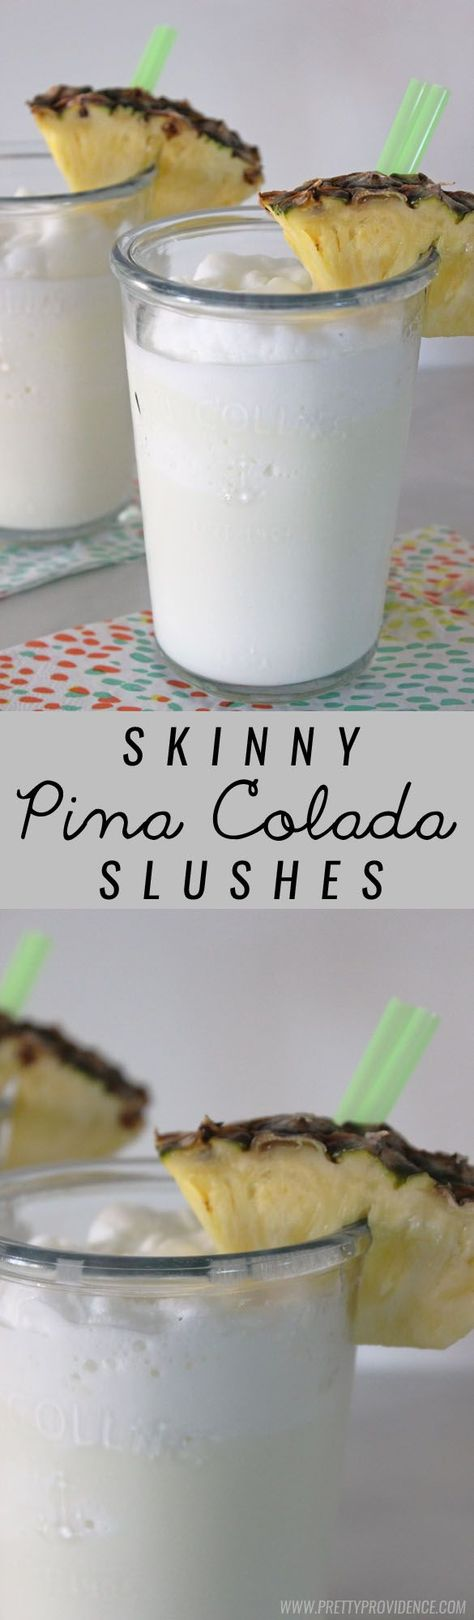 These skinny virgin pina colada slushes are amazing! A totally guilt free and refreshing summer drink! @prettyprovident